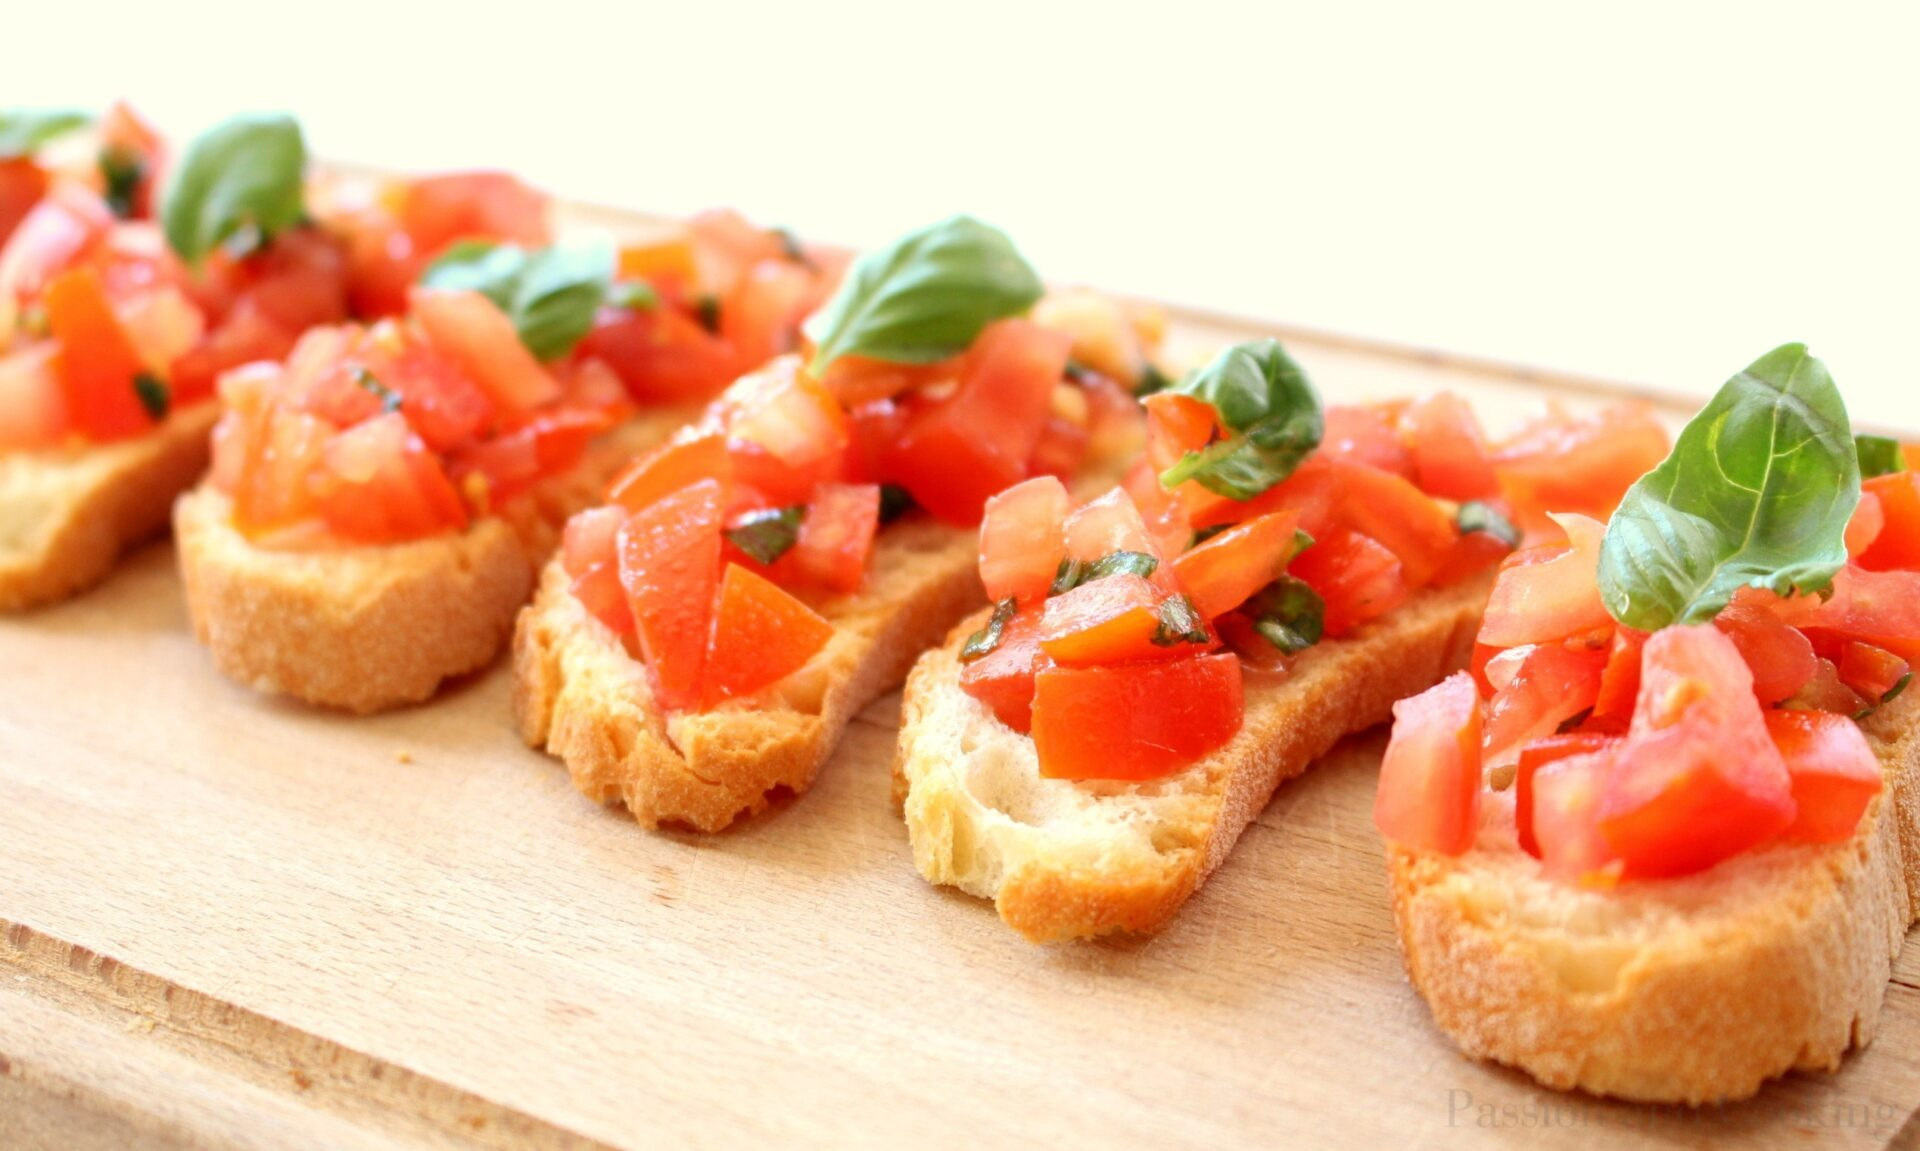 Bruschetta al Pomodoro (Tomato Bruschetta) - Passion and cooking